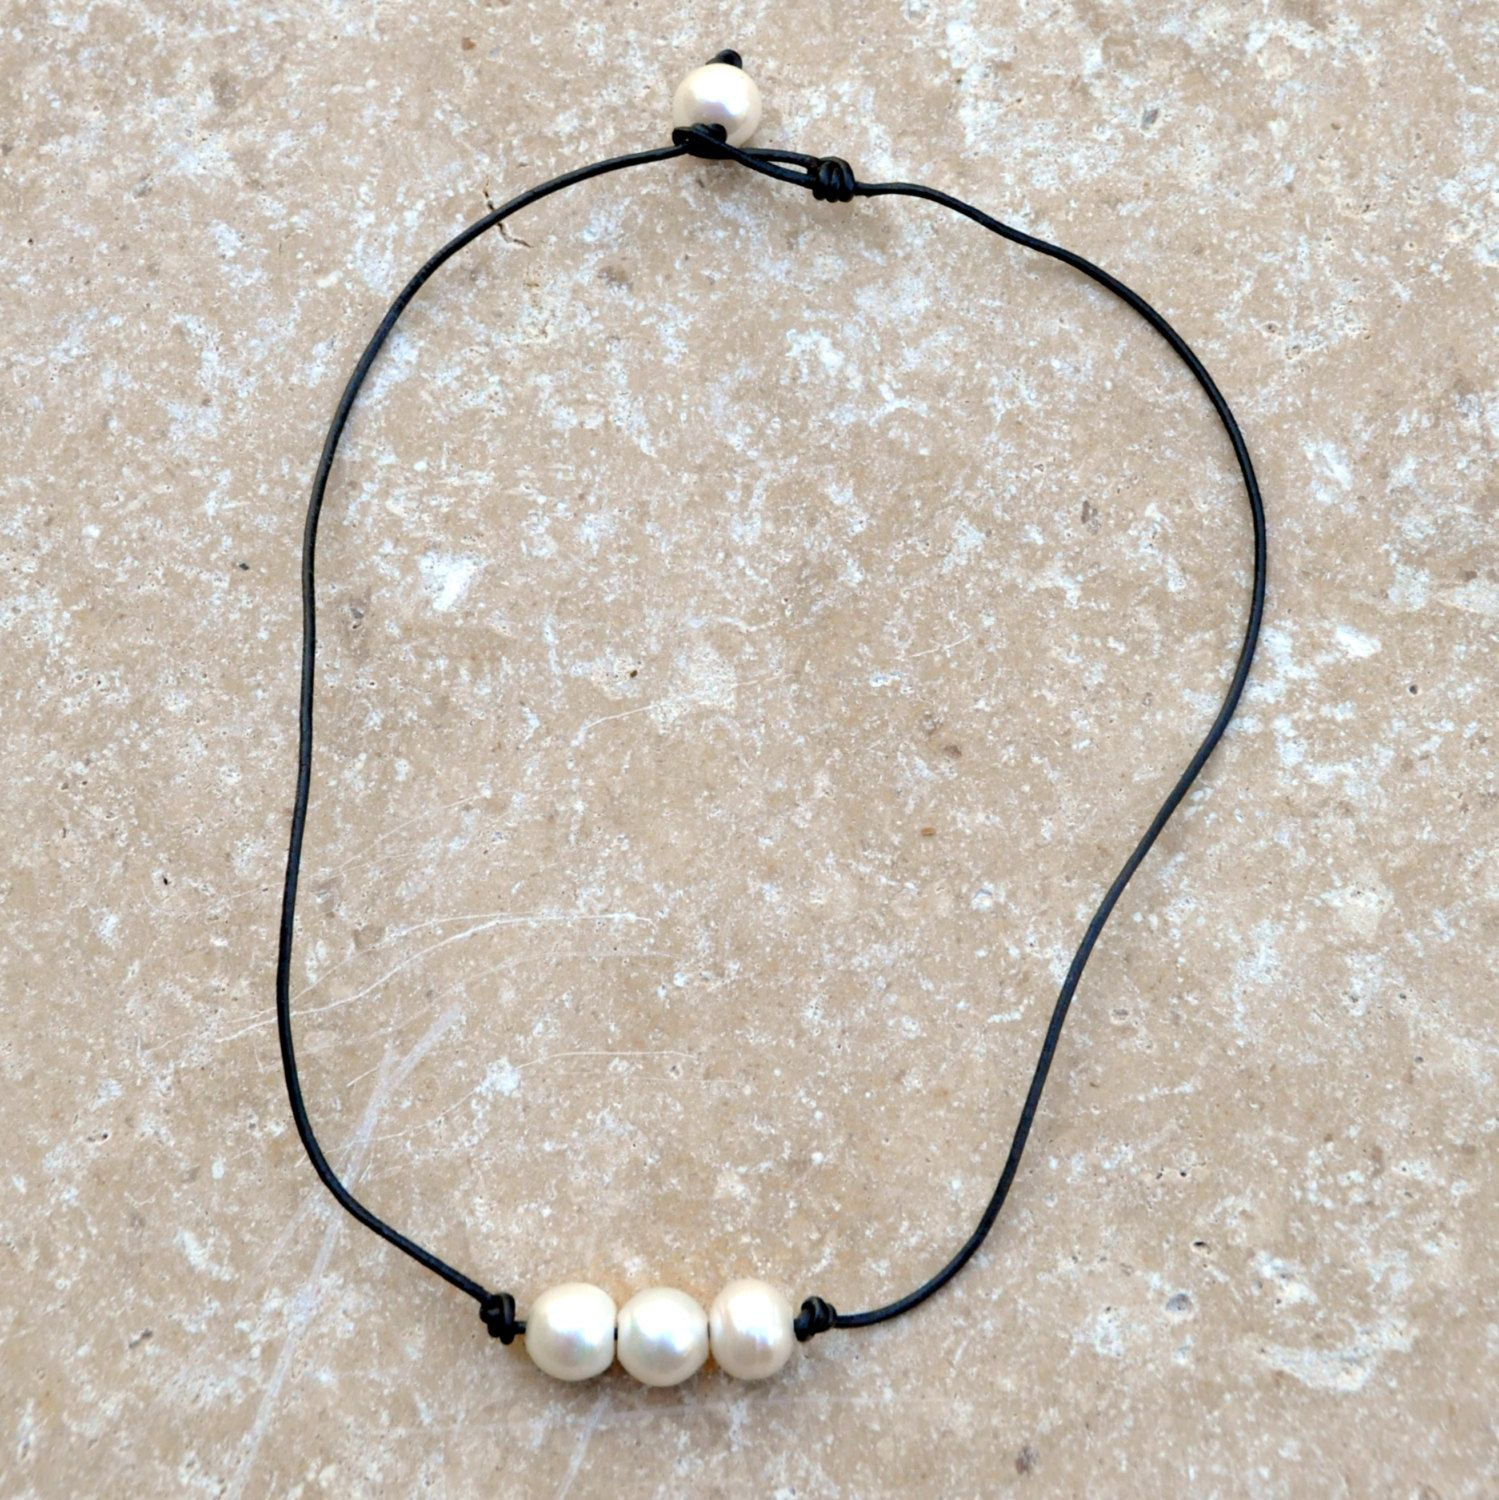 b897d90fa82ac 3 Pearl Necklace/Knotted Leather and Freshwater Pearl Choker/Leather ...